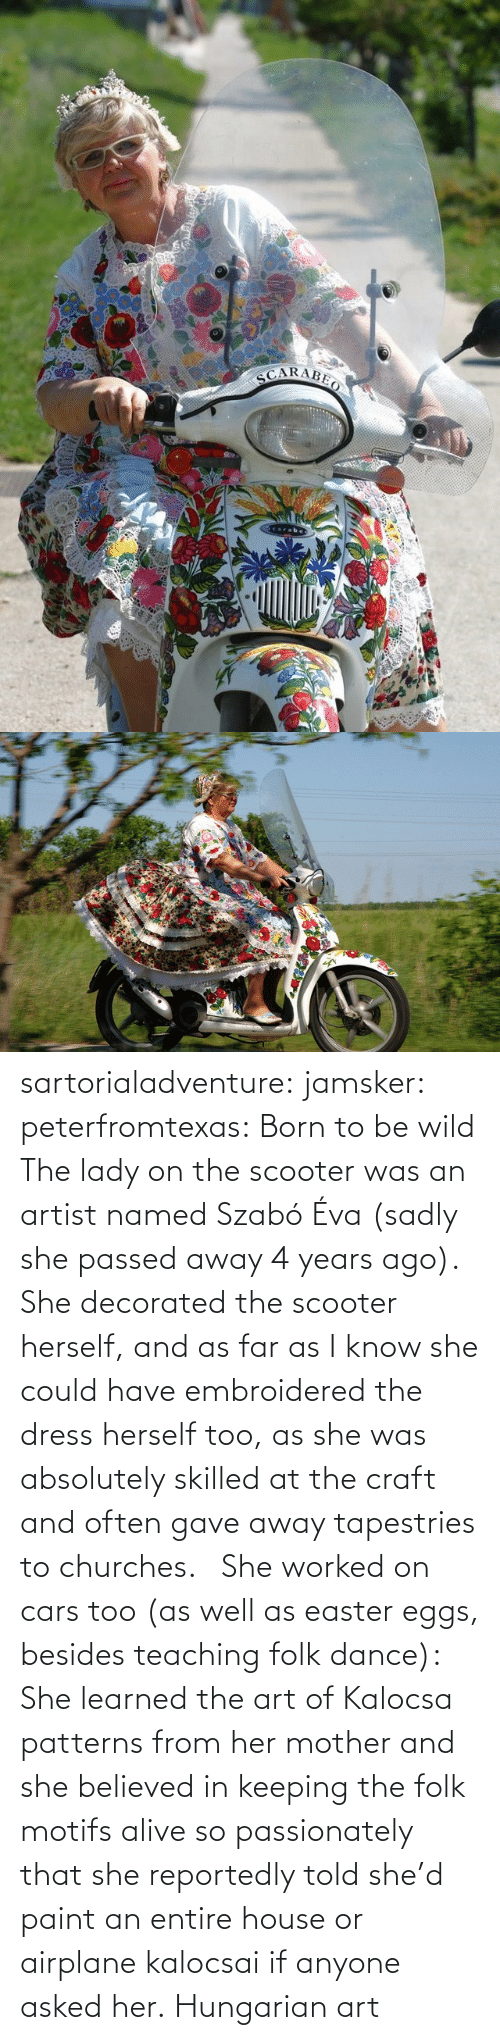 Airplane: sartorialadventure: jamsker:  peterfromtexas: Born to be wild The lady on the scooter was an artist named Szabó Éva (sadly she passed away 4 years ago). She decorated the scooter herself, and as far as I know she could have embroidered the dress herself too, as she was absolutely skilled at the craft and often gave away tapestries to churches.   She worked on cars too (as well as easter eggs, besides teaching folk dance): She learned the art of Kalocsa patterns from her mother and she believed in keeping the folk motifs alive so passionately that she reportedly told she'd paint an entire house or airplane kalocsai if anyone asked her.  Hungarian art